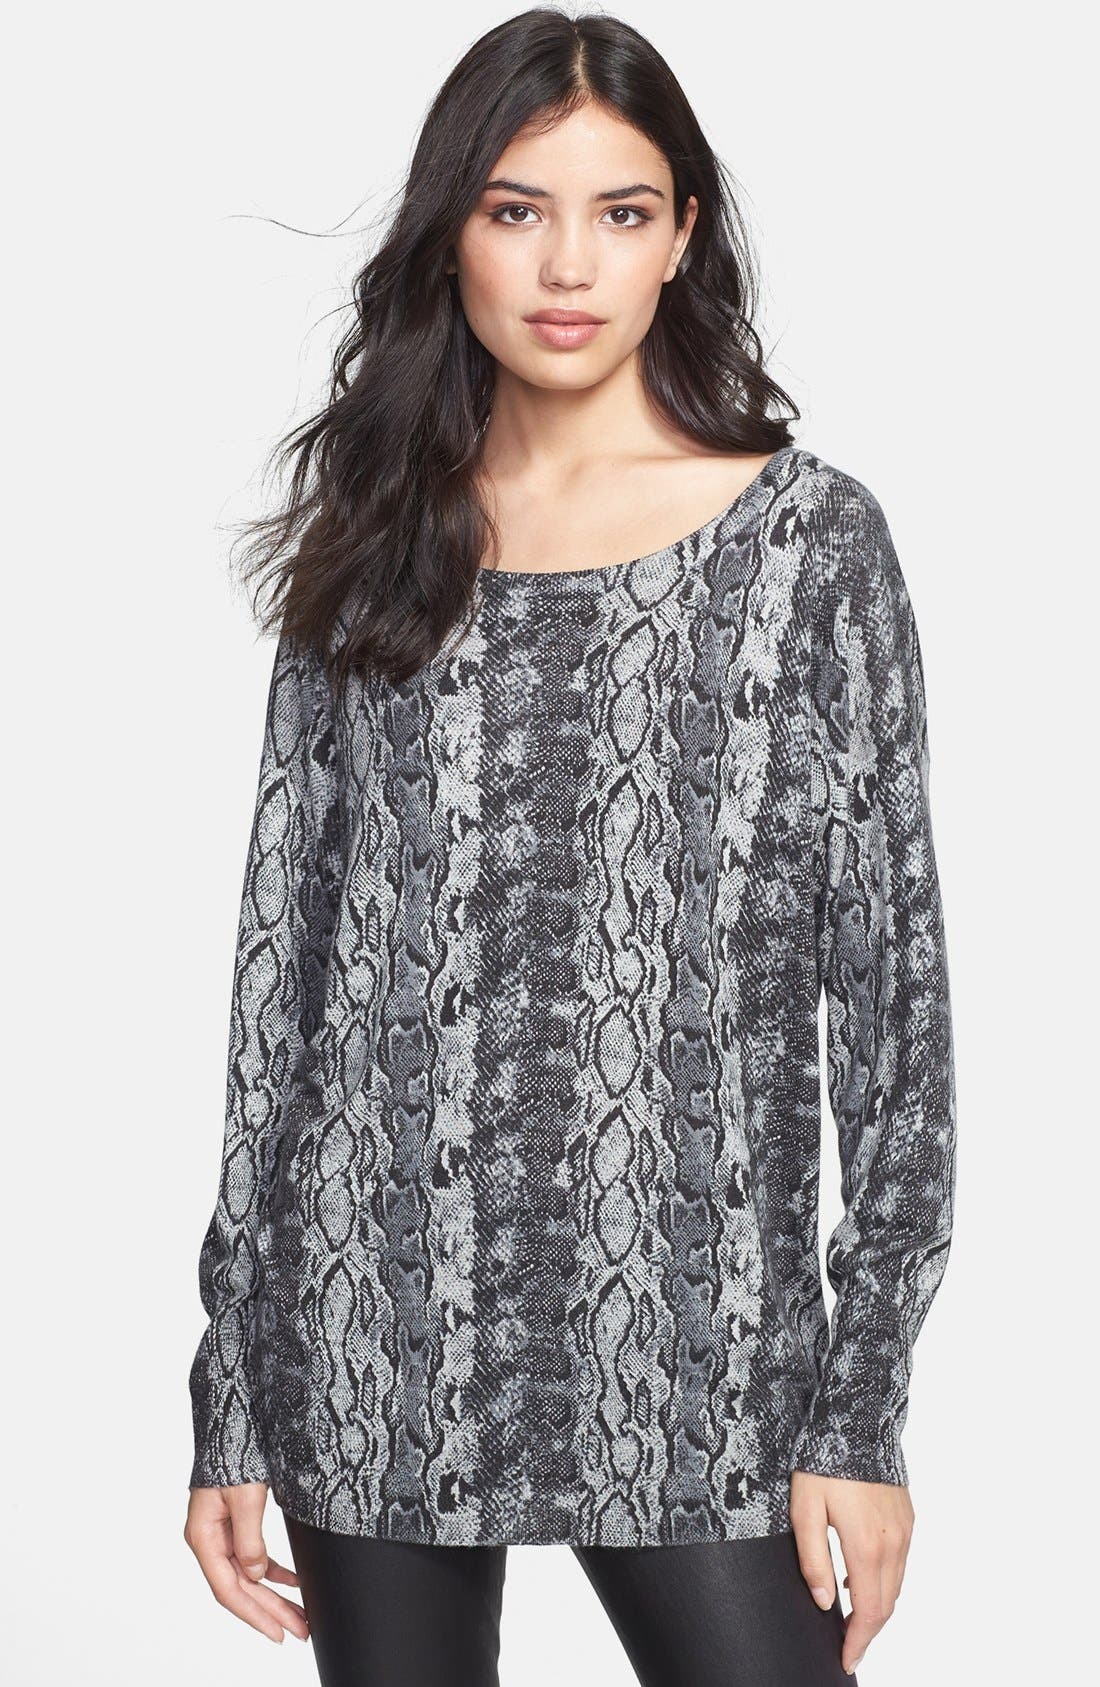 Alternate Image 1 Selected - Joie 'Cienna' Print Sweater